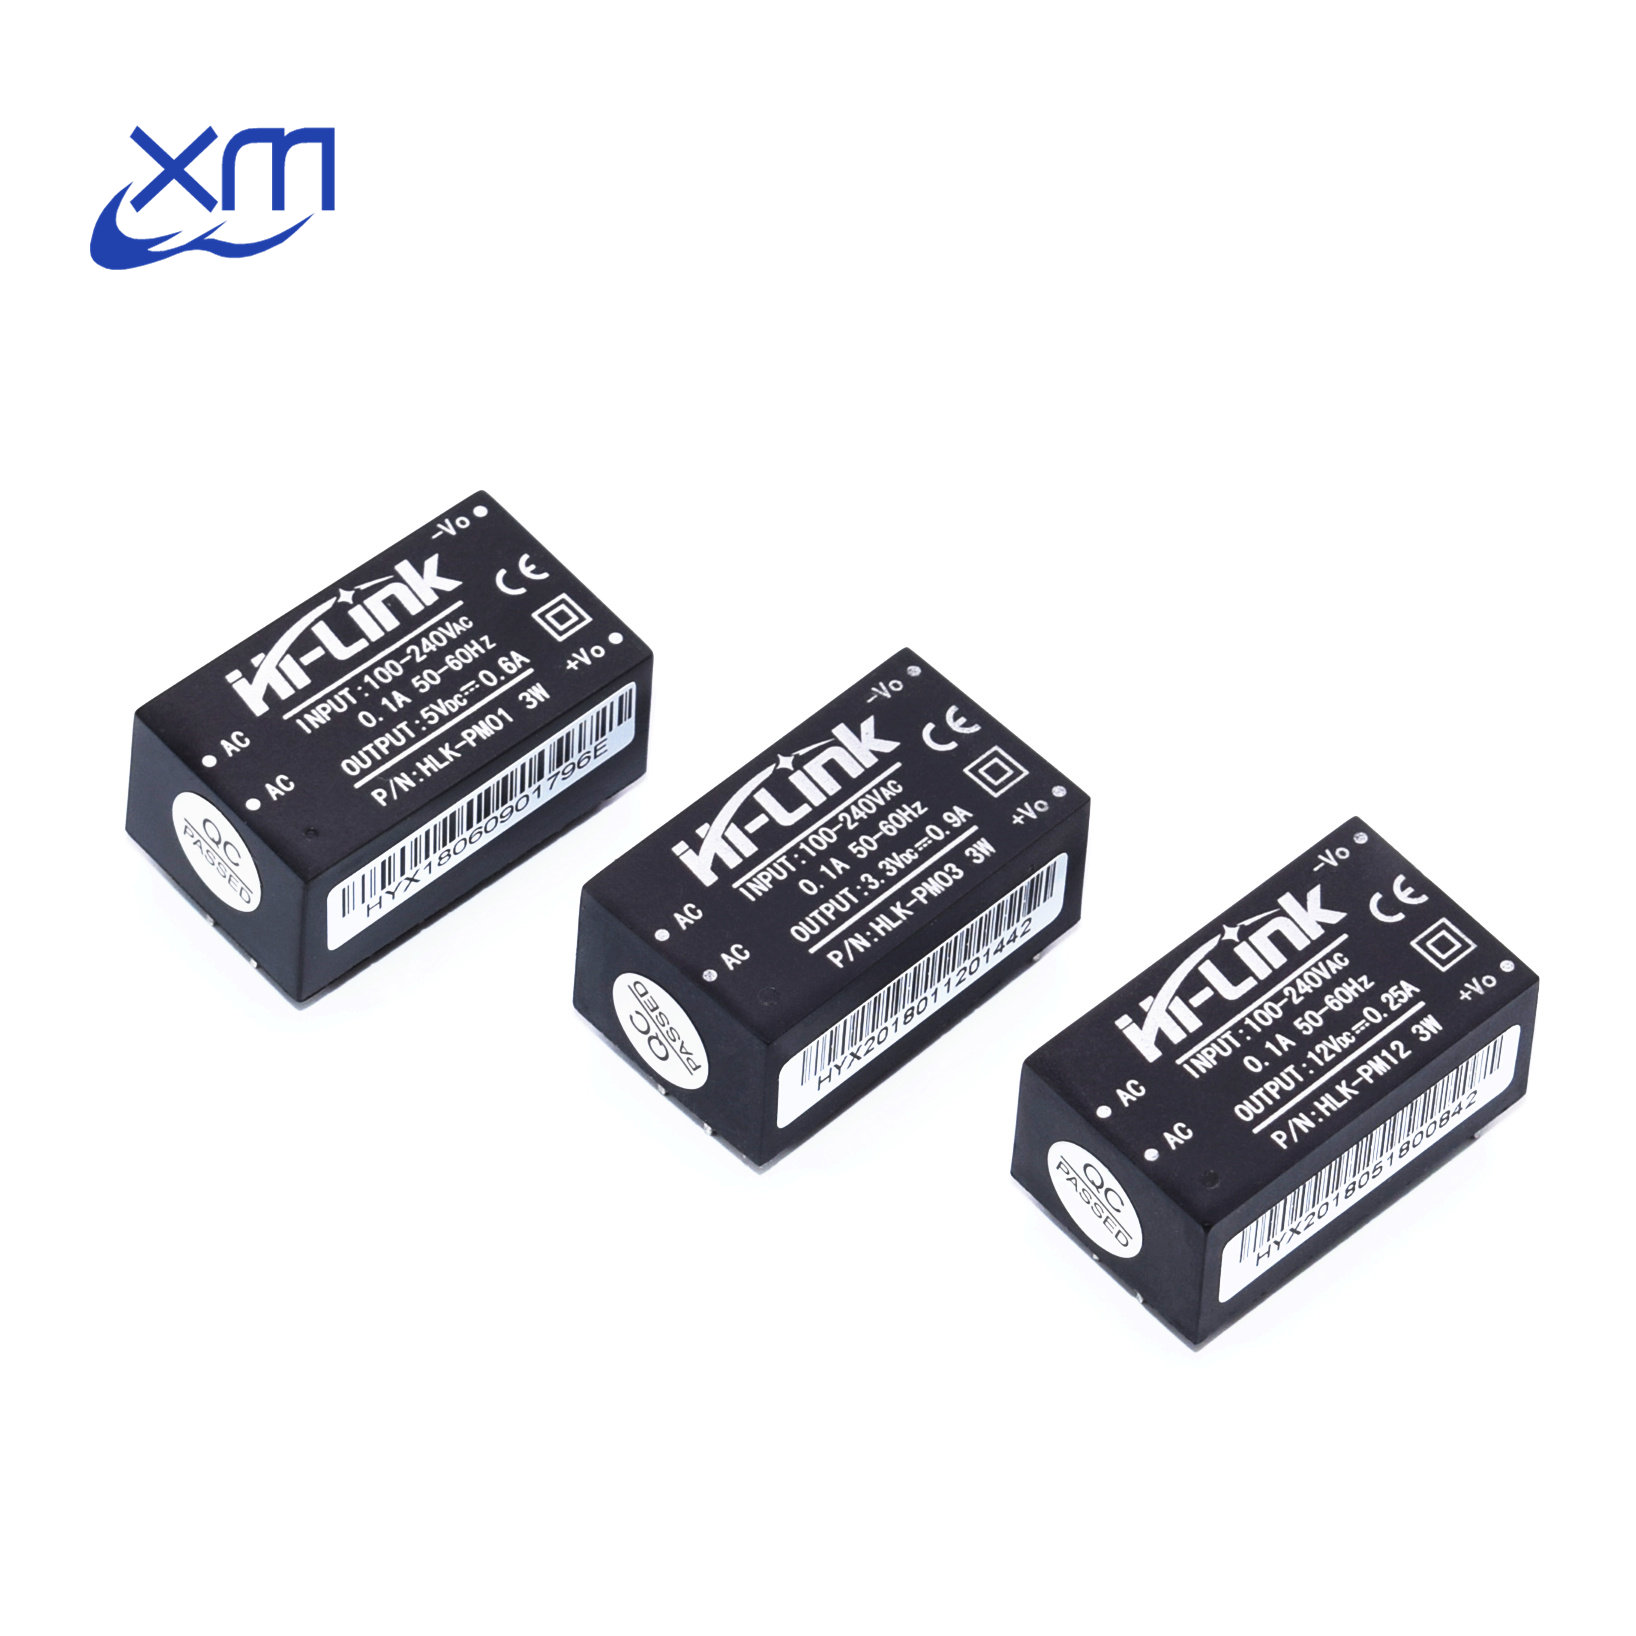 HLK-PM01 HLK-PM03 HLK-PM12 AC-DC 220V To 5V/3.3V/12V Mini Power Supply Module,intelligent Household Switch Power Module UL/CE